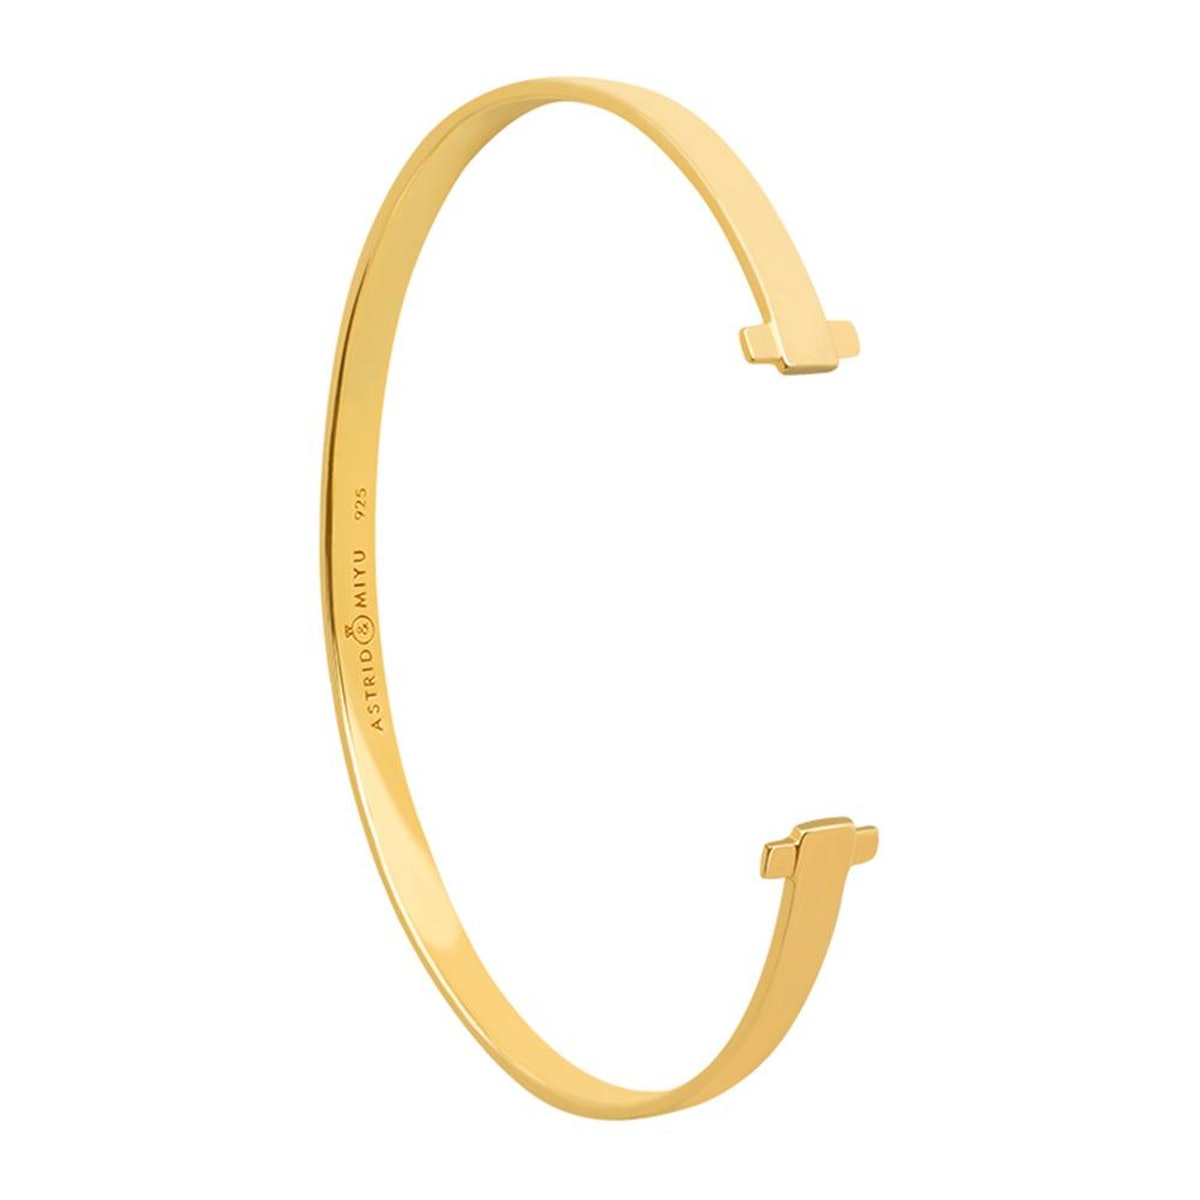 Crossing Lines Locking Bangle in Gold